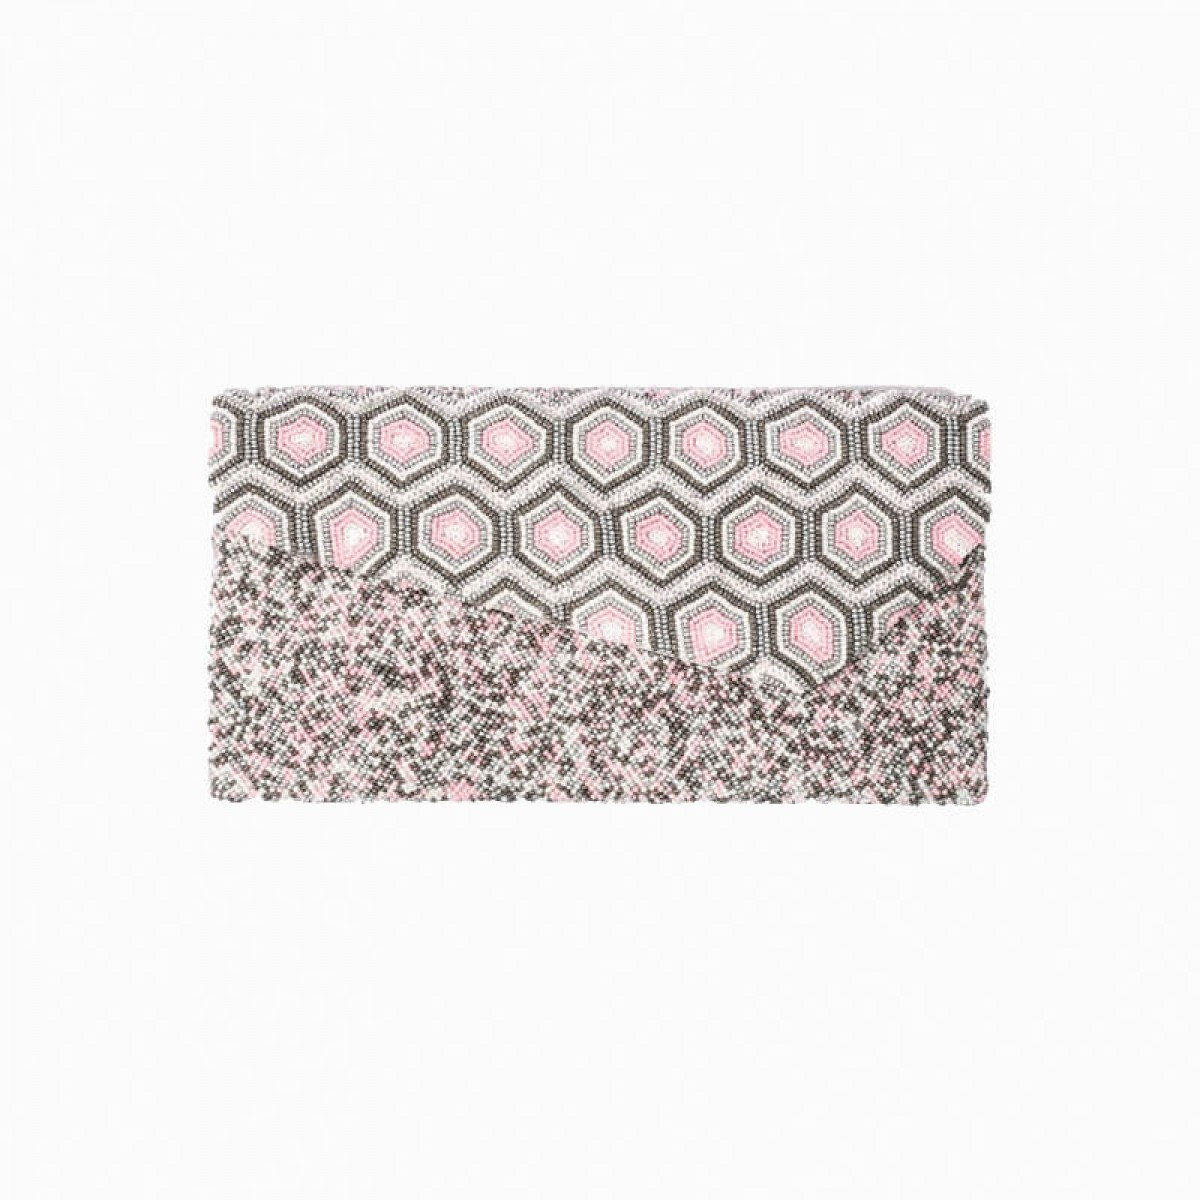 Beaded Evening Clutch Bag - Pink